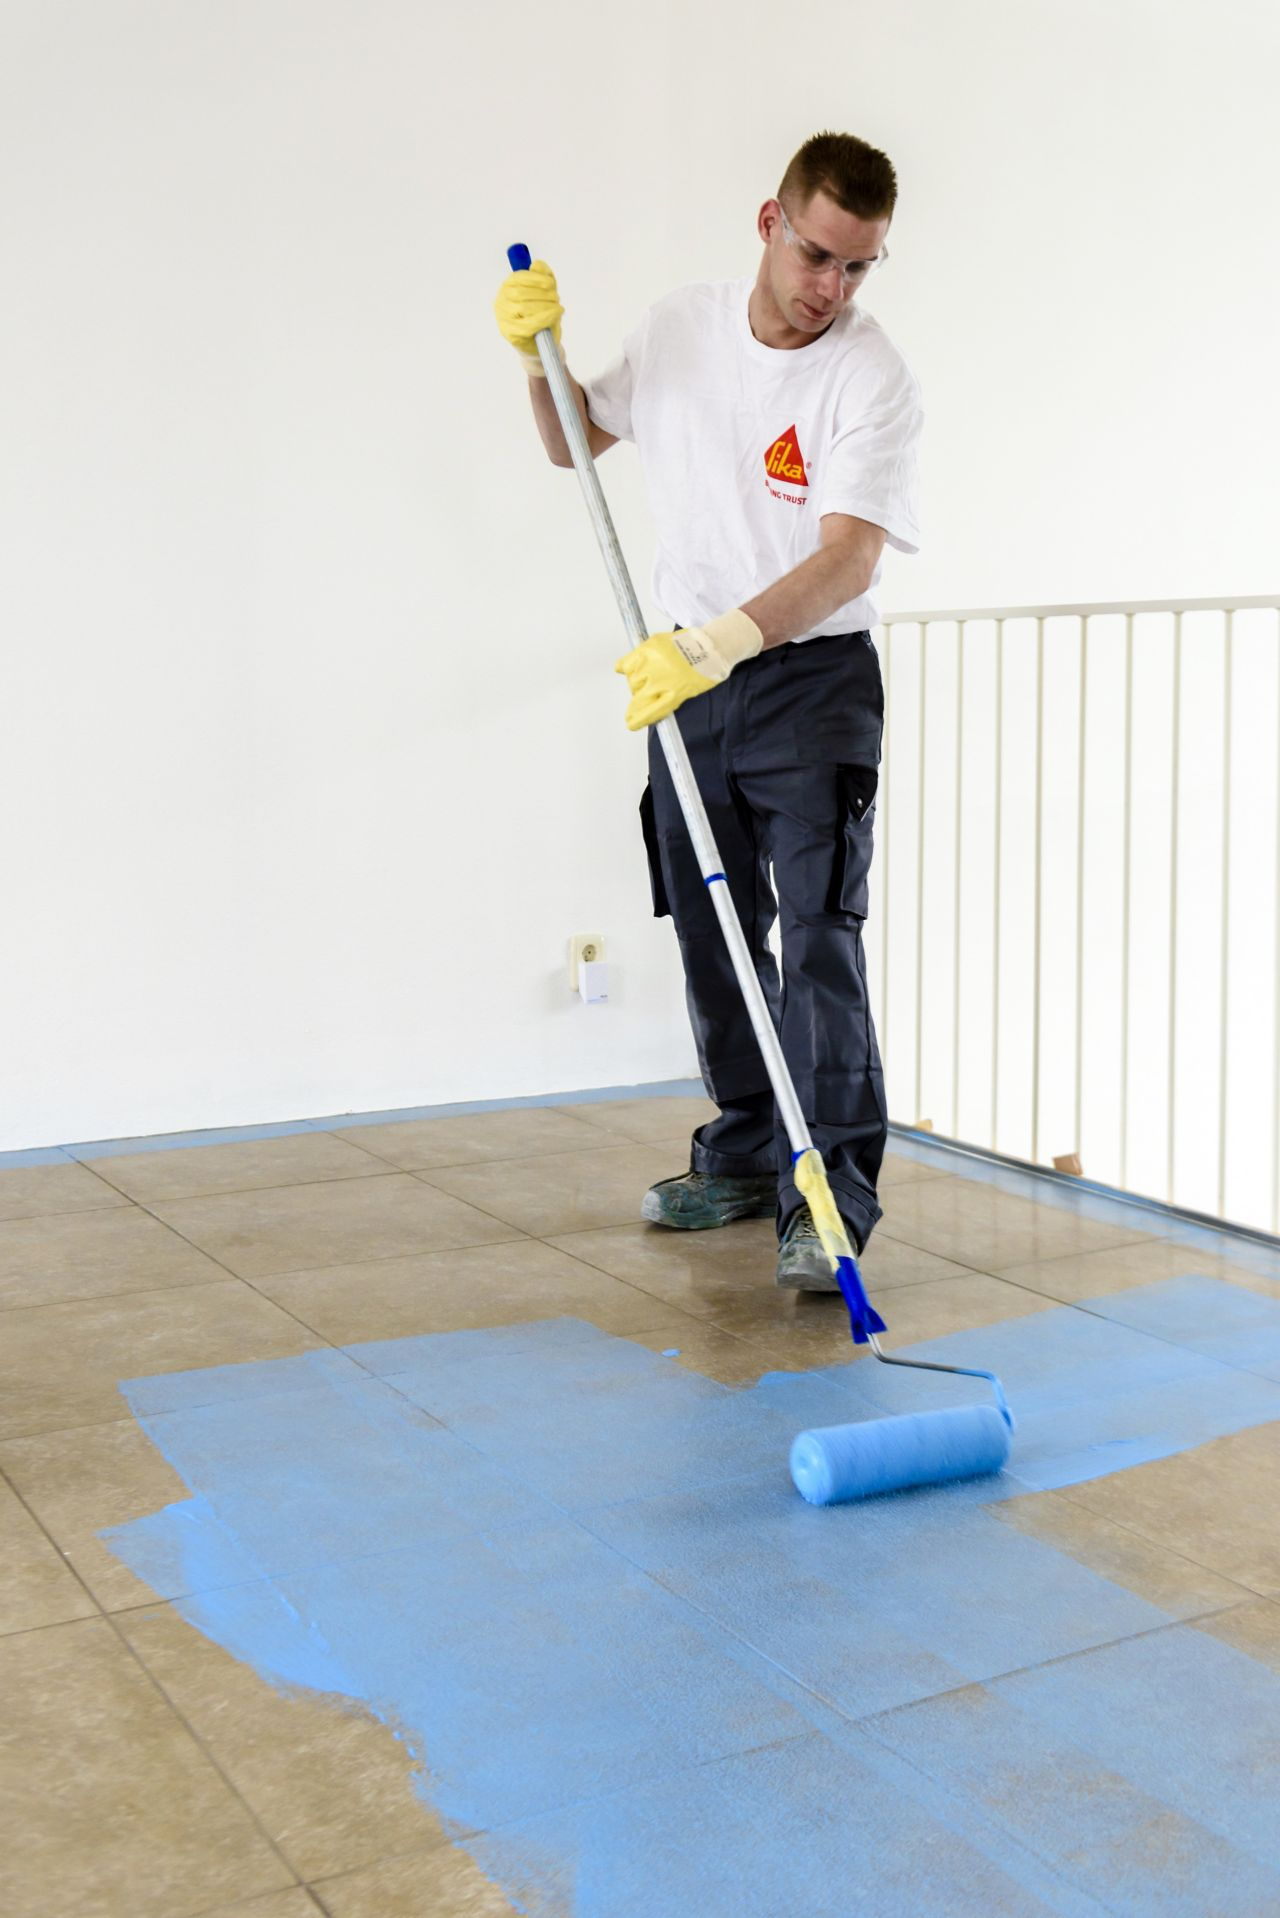 Sika applicator applying blue primer coat to floor tiles